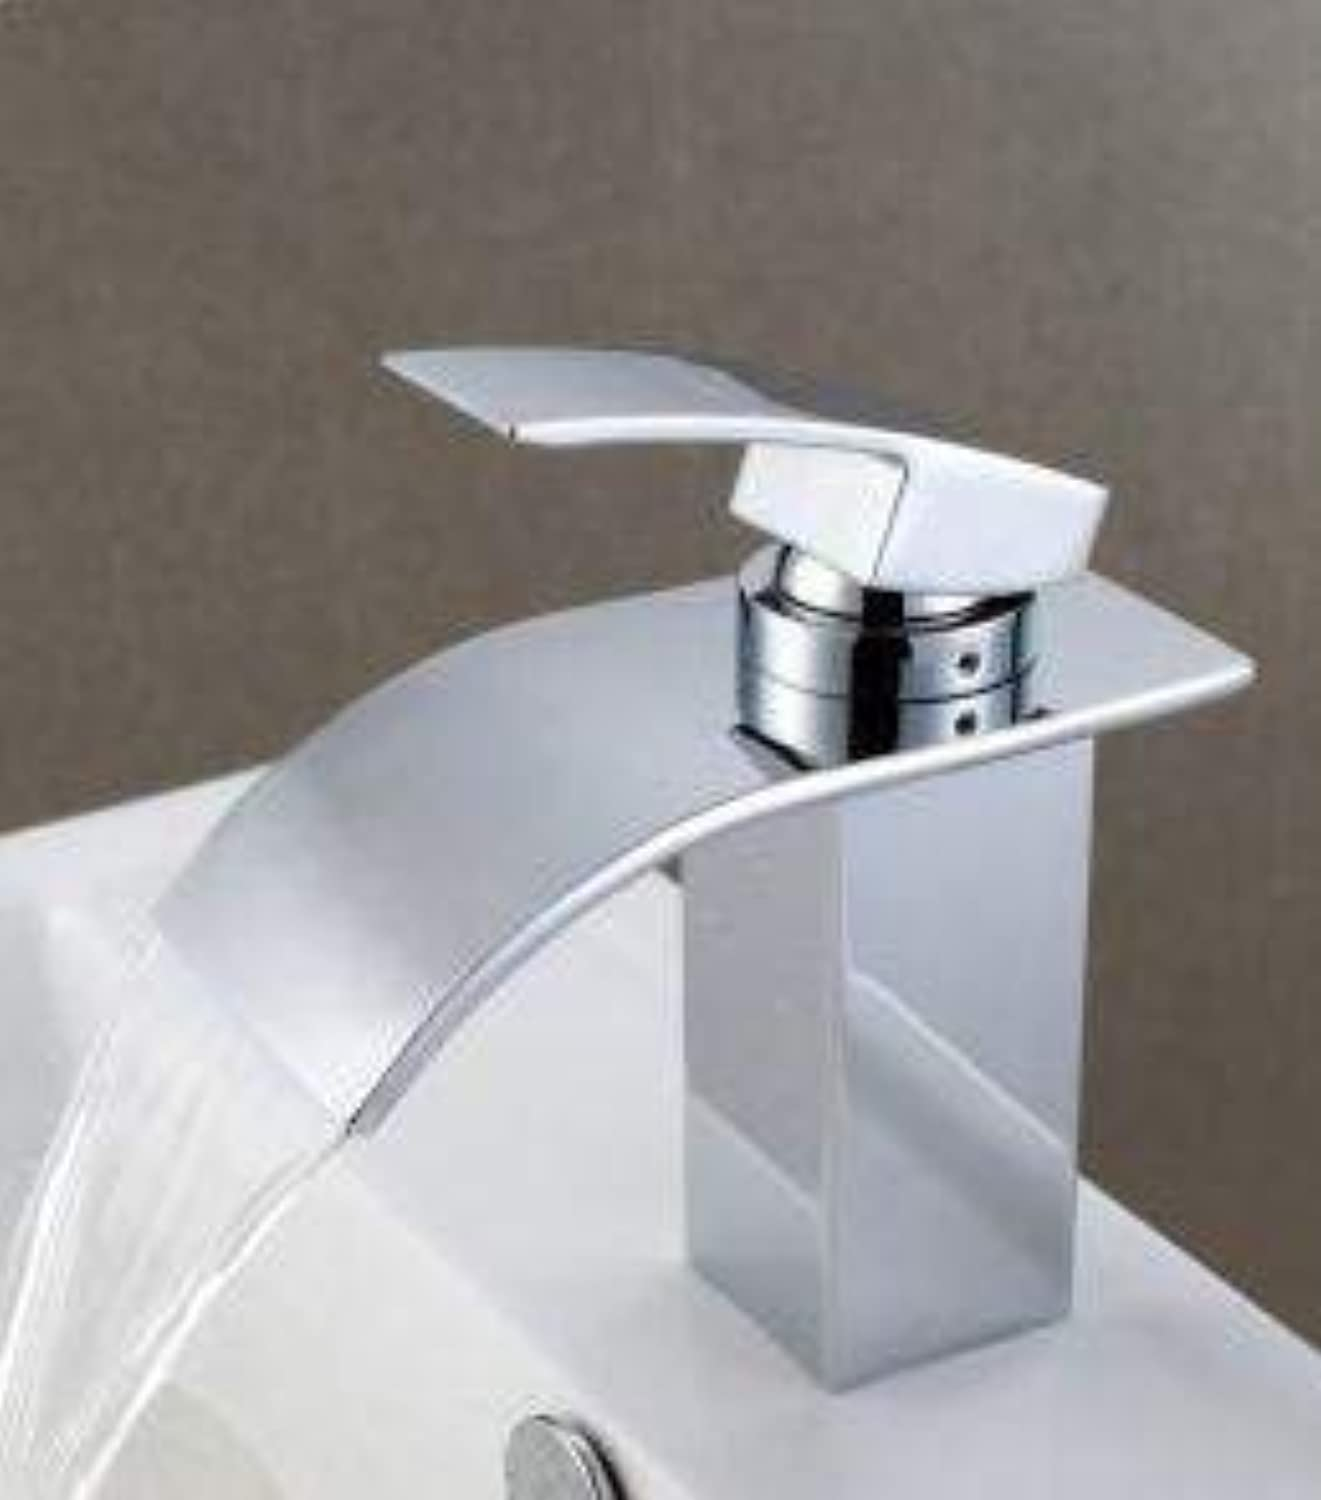 Oudan Ceramic Valve Core-Well Brass Hot and Cold Water Bathroom Basin Mixer Tap with Chromium (color   -, Size   -)